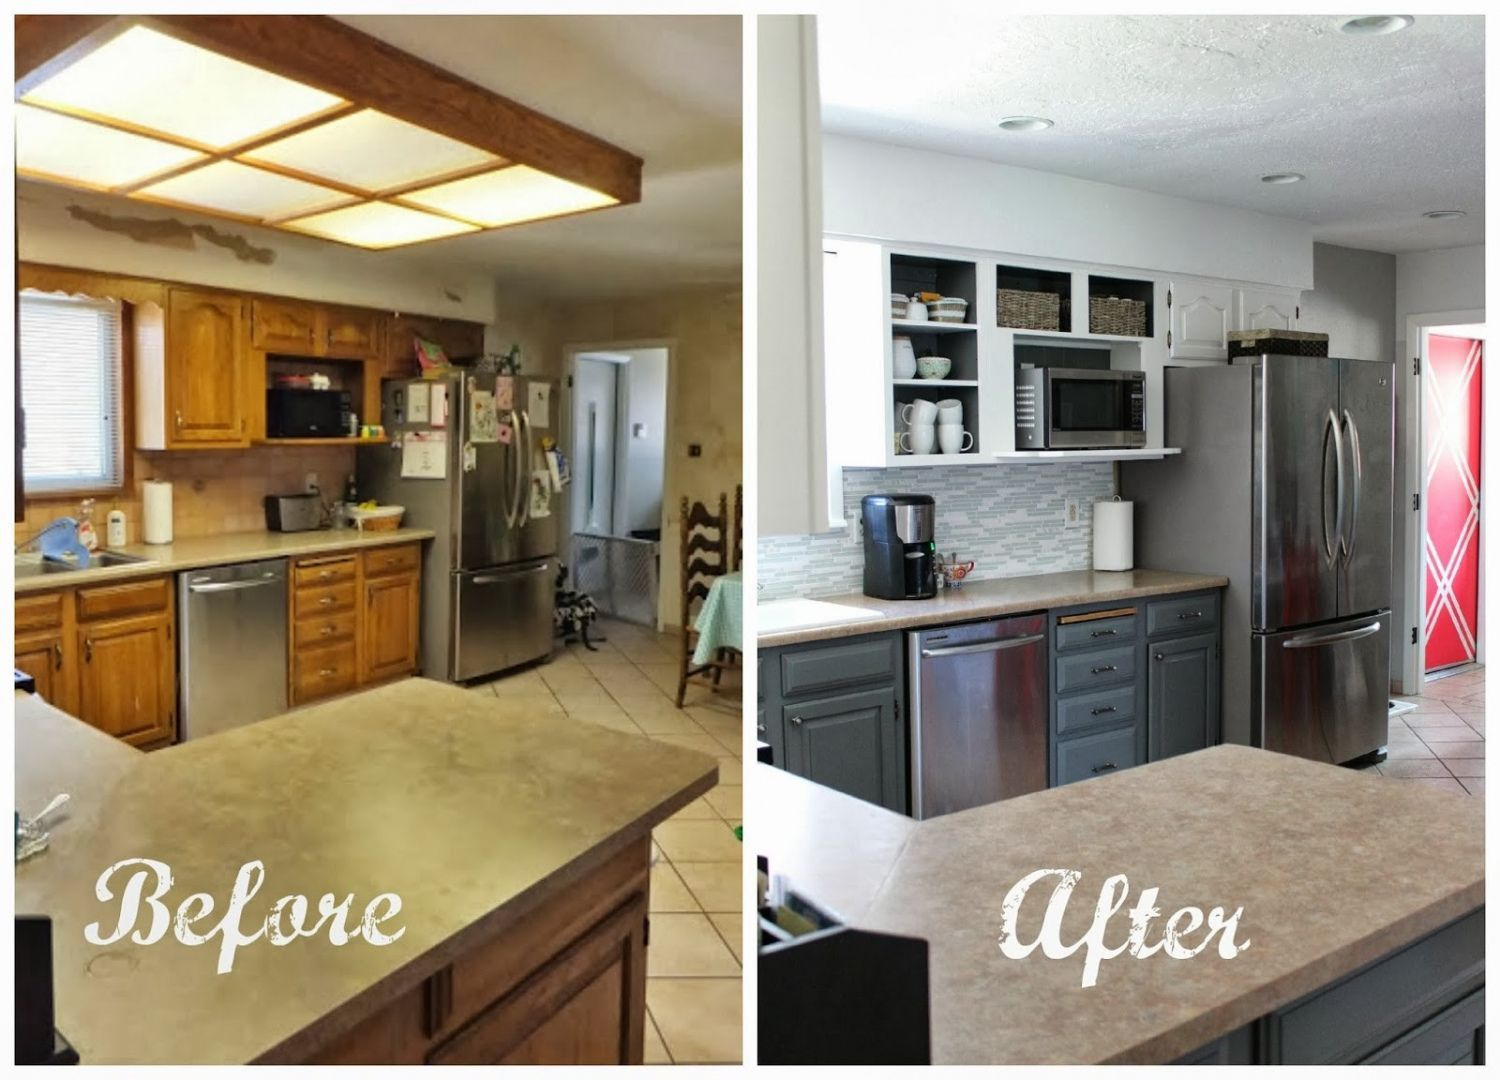 15 Shocking Small Kitchen Remodel Ikea Ideas Cheap Kitchen Remodel Affordable Kitchen Remodeling Kitchen Remodel Small